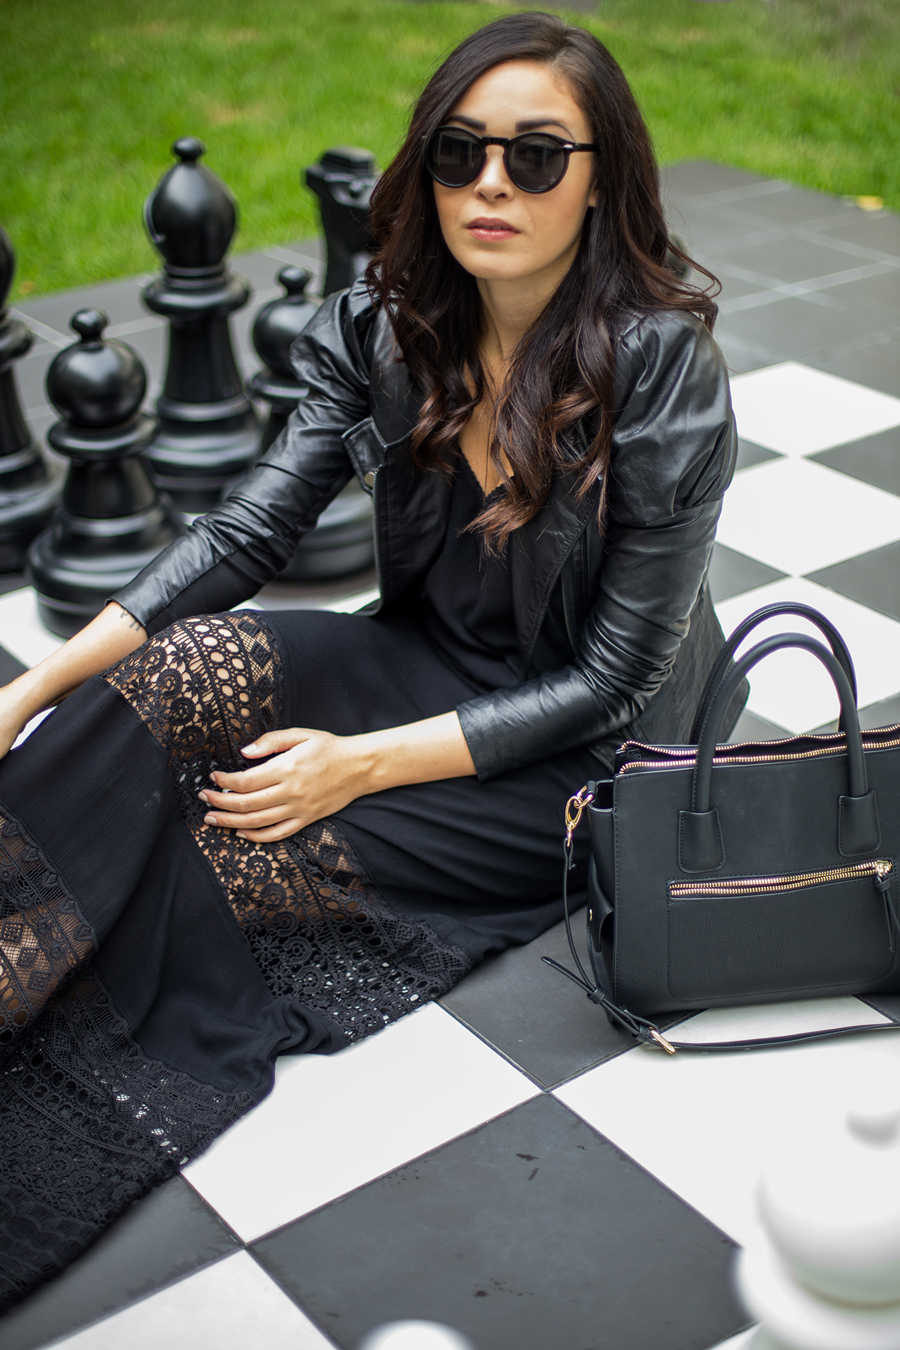 FIXIN-TO-THRILL-MONIQUE-RODRIQUEZ-WORN-RAISED-MAXI-DRESS-LEATHER-TREND-FALL-OCTOBER-ATX-AUSTIN-STYLE-BLOG-FW15-TRENDY-CHIC-GLAM-TEXAS-6